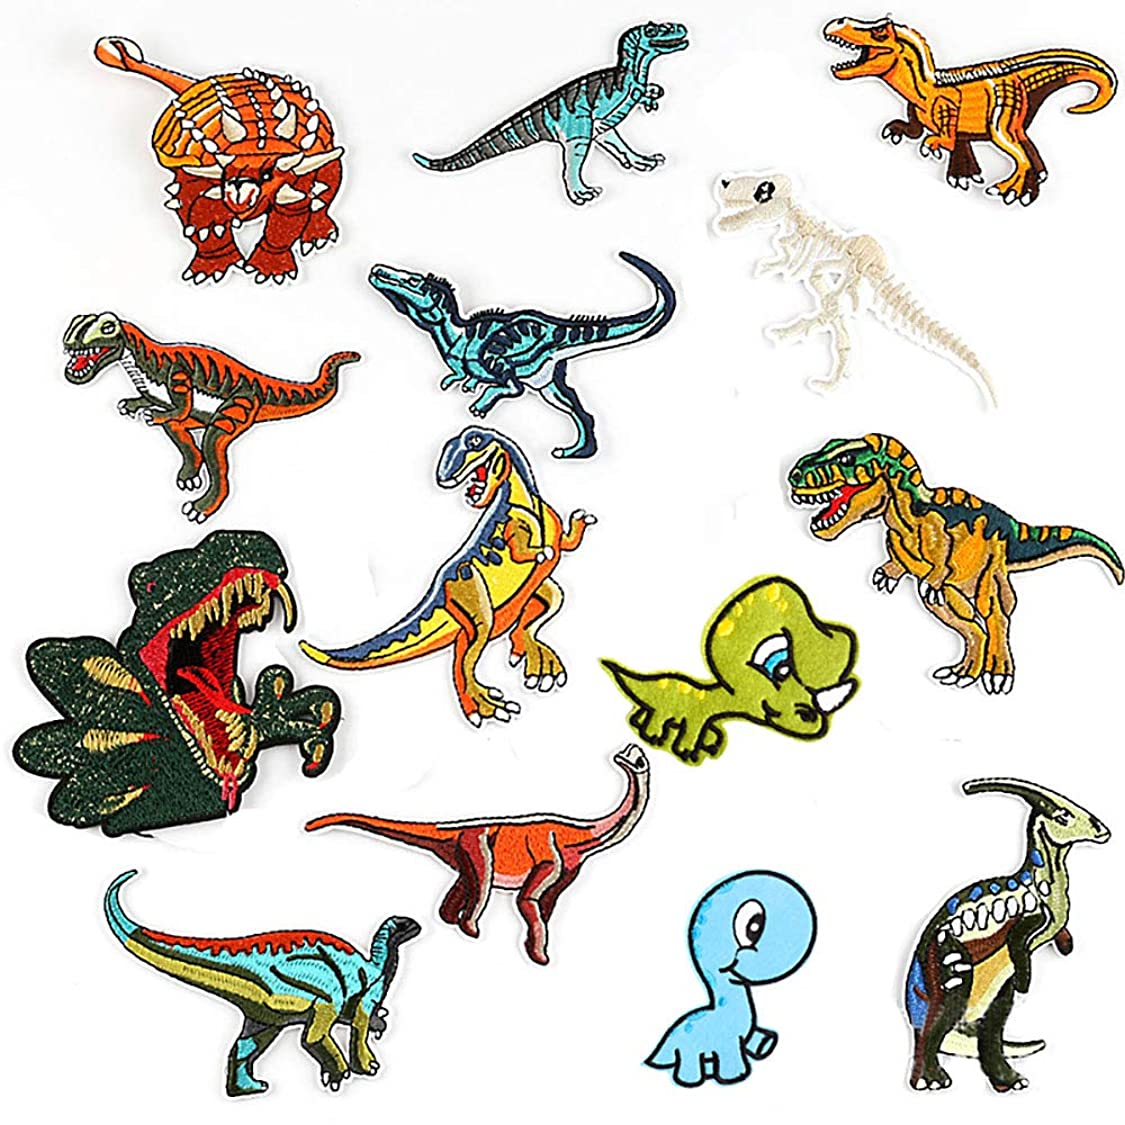 Dinosaur Iron on Patches, 14 Pieces Iron On Patches Embroidered Dinosaur Patches Decoration Sew On Patchesfor DIY Jeans Jacket, Clothing, Handbag pu83936162725522